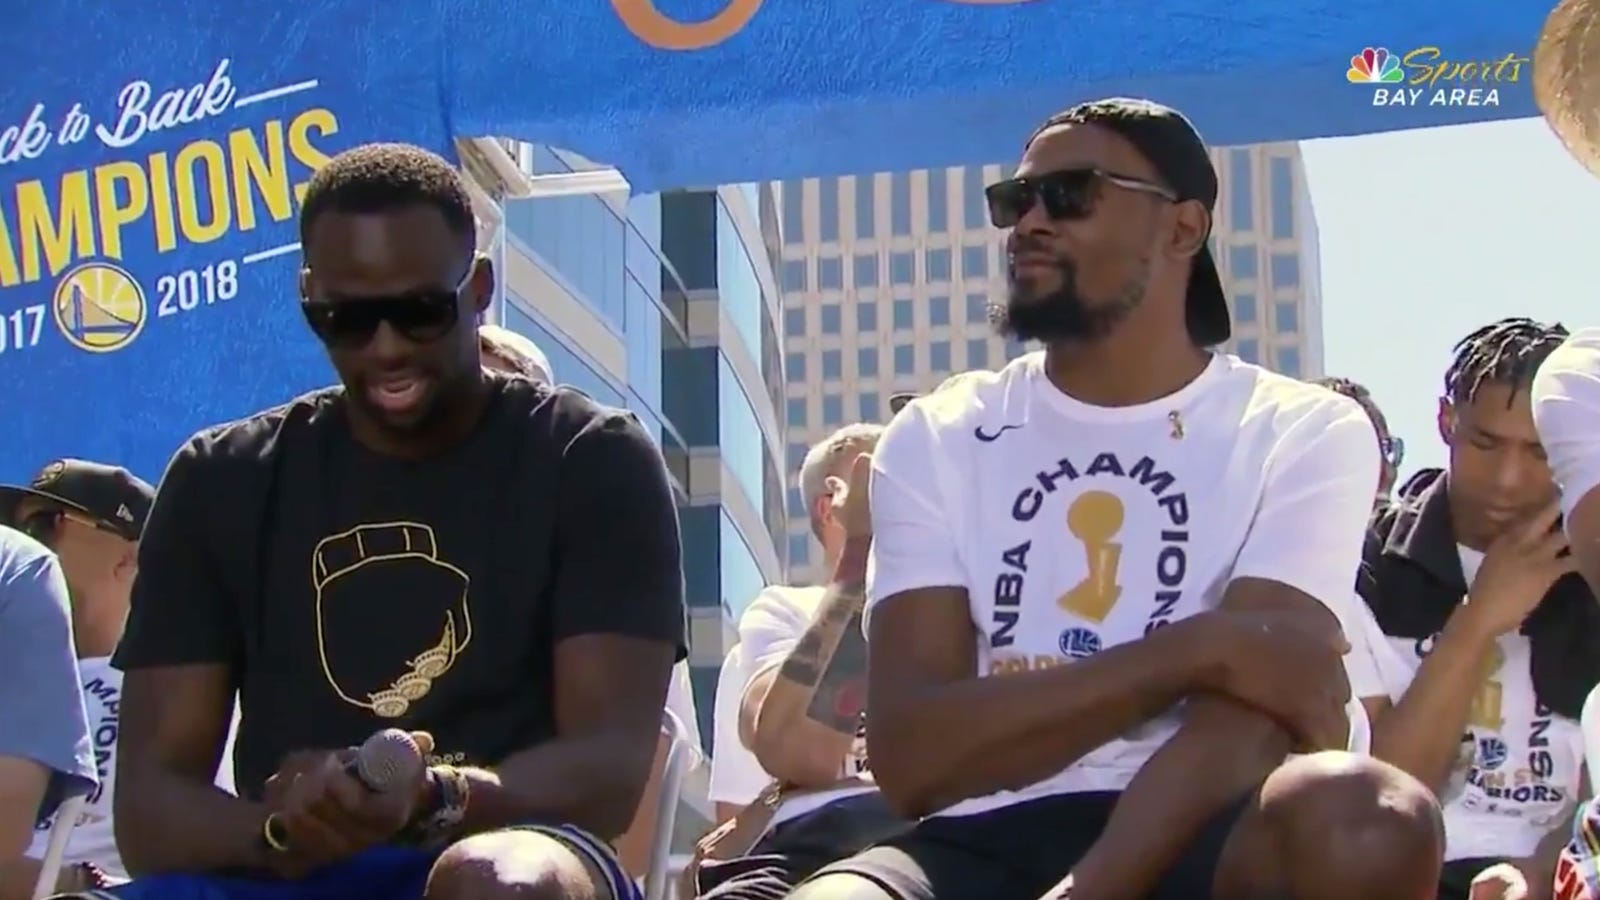 ee4f7468dba Draymond Green Has Once Again Mocked LeBron James With His Championship  Parade T-Shirt